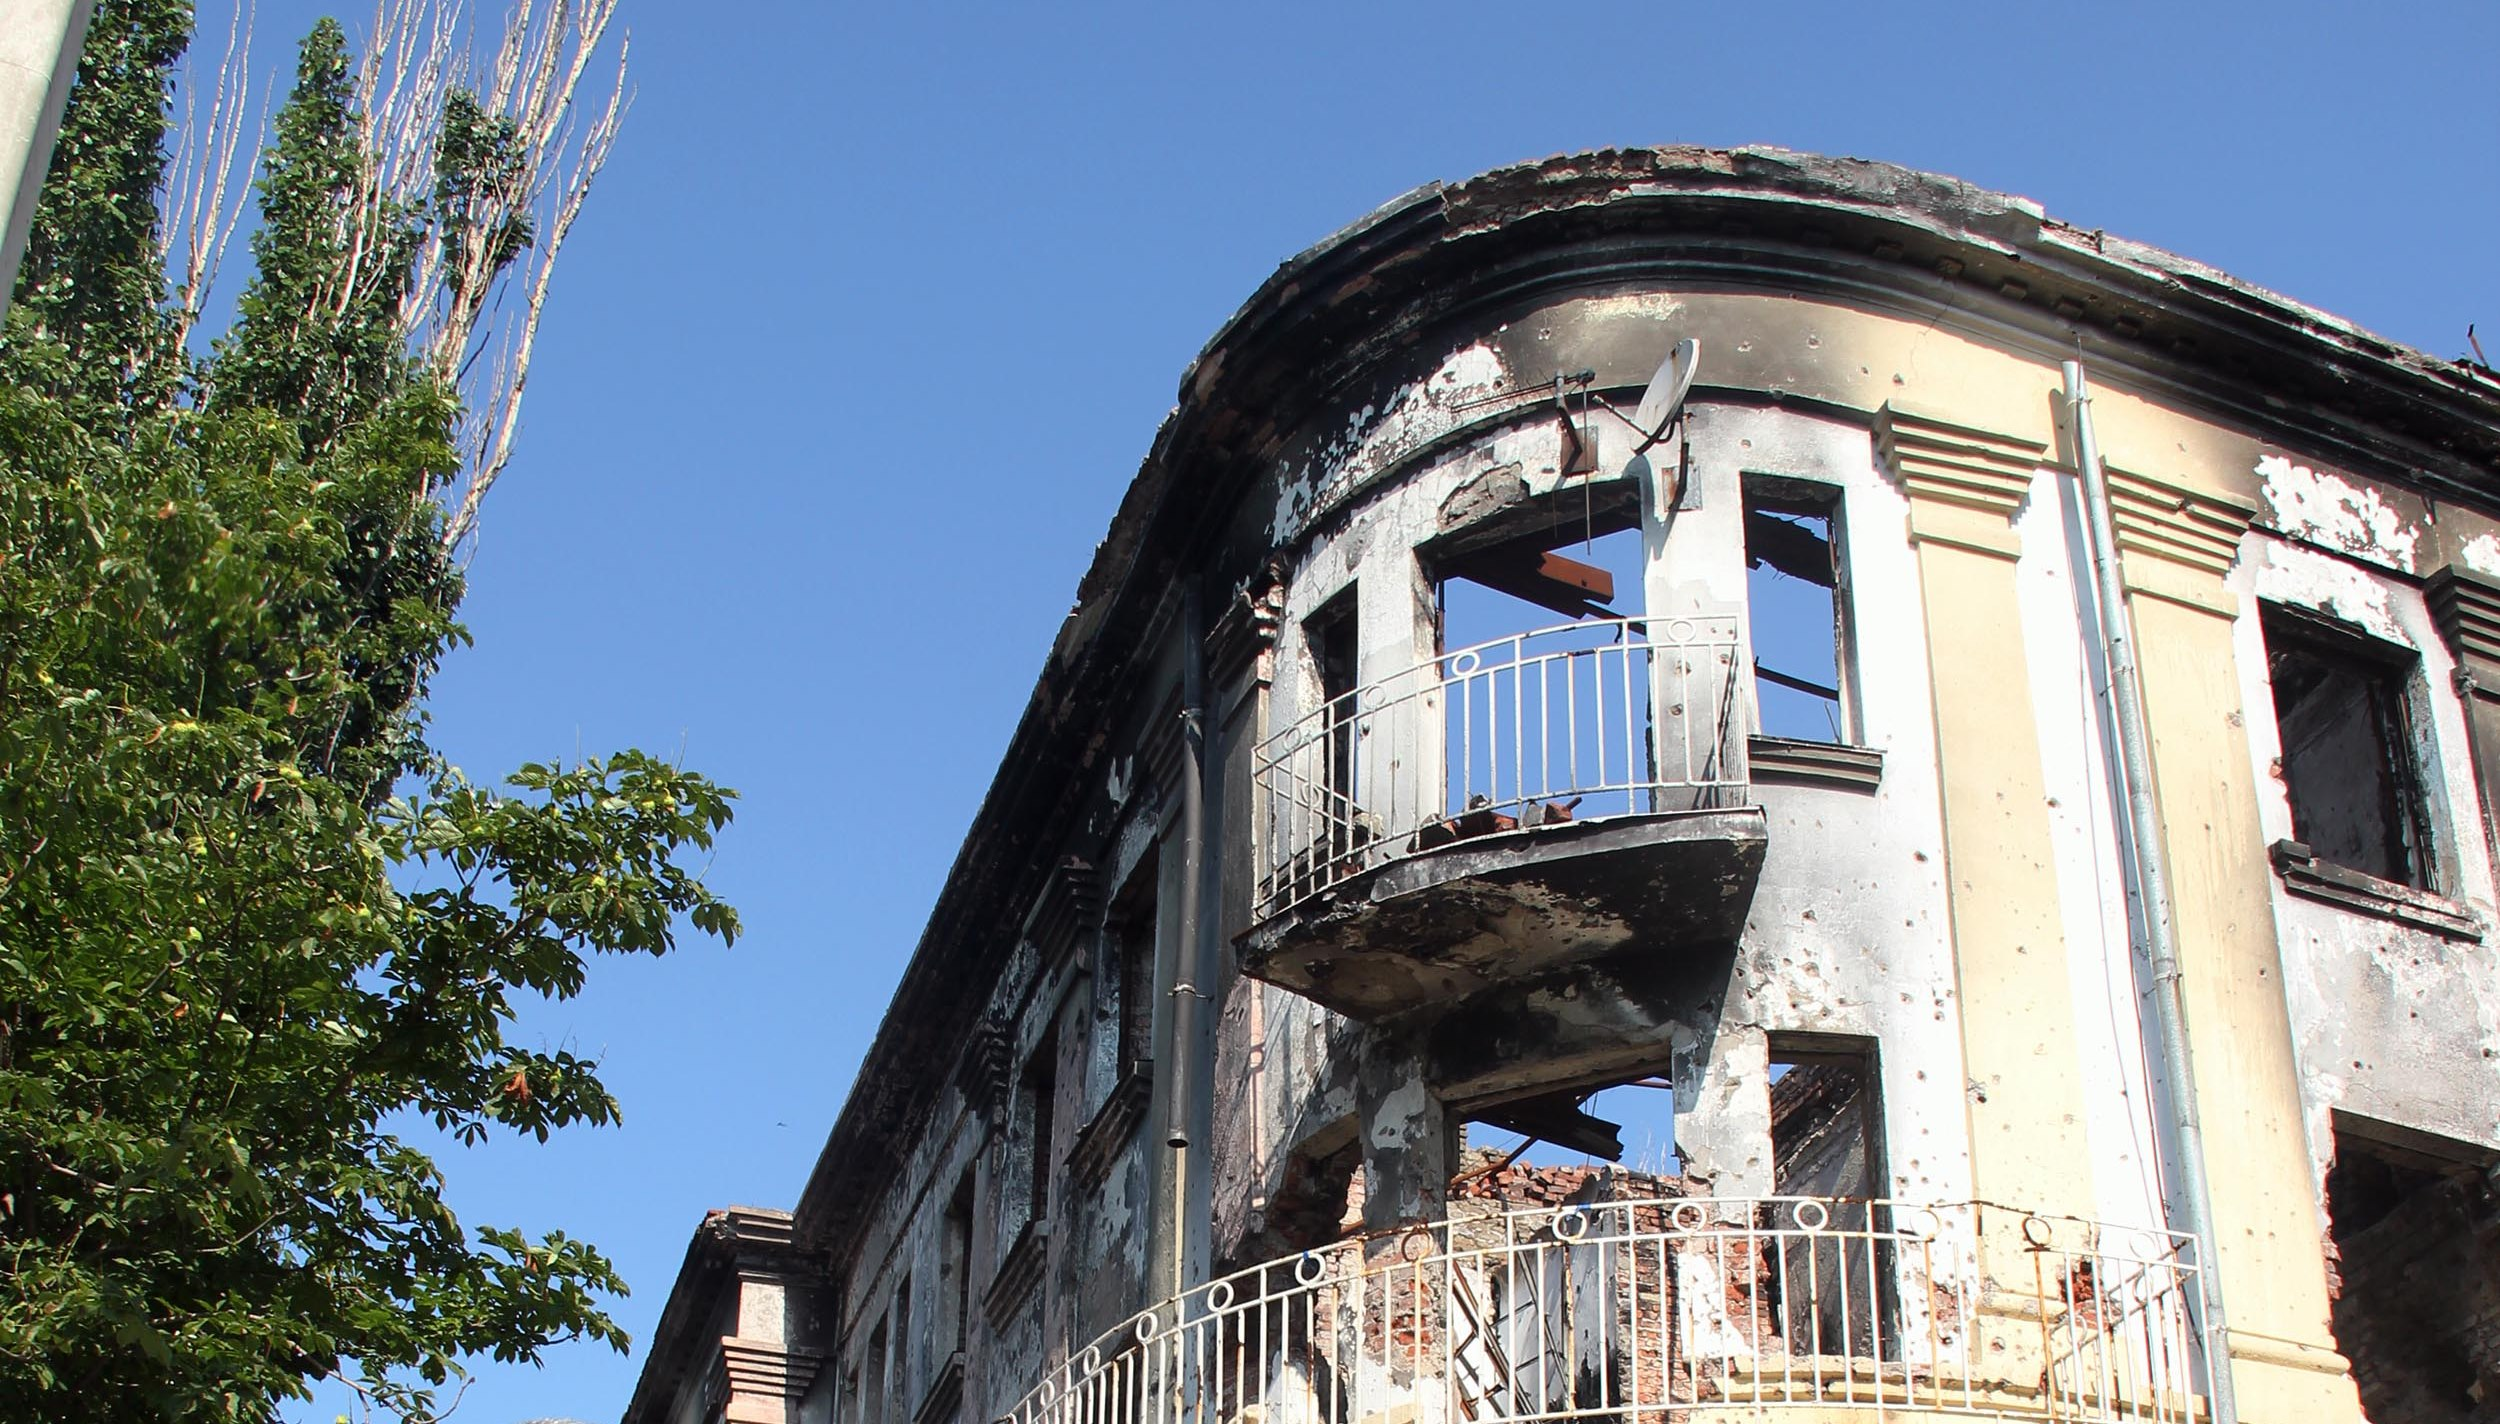 The police station in Mariupol was destroyed by shelling from the rebels when they attempted to take over the city in June. Photo: UNHCR